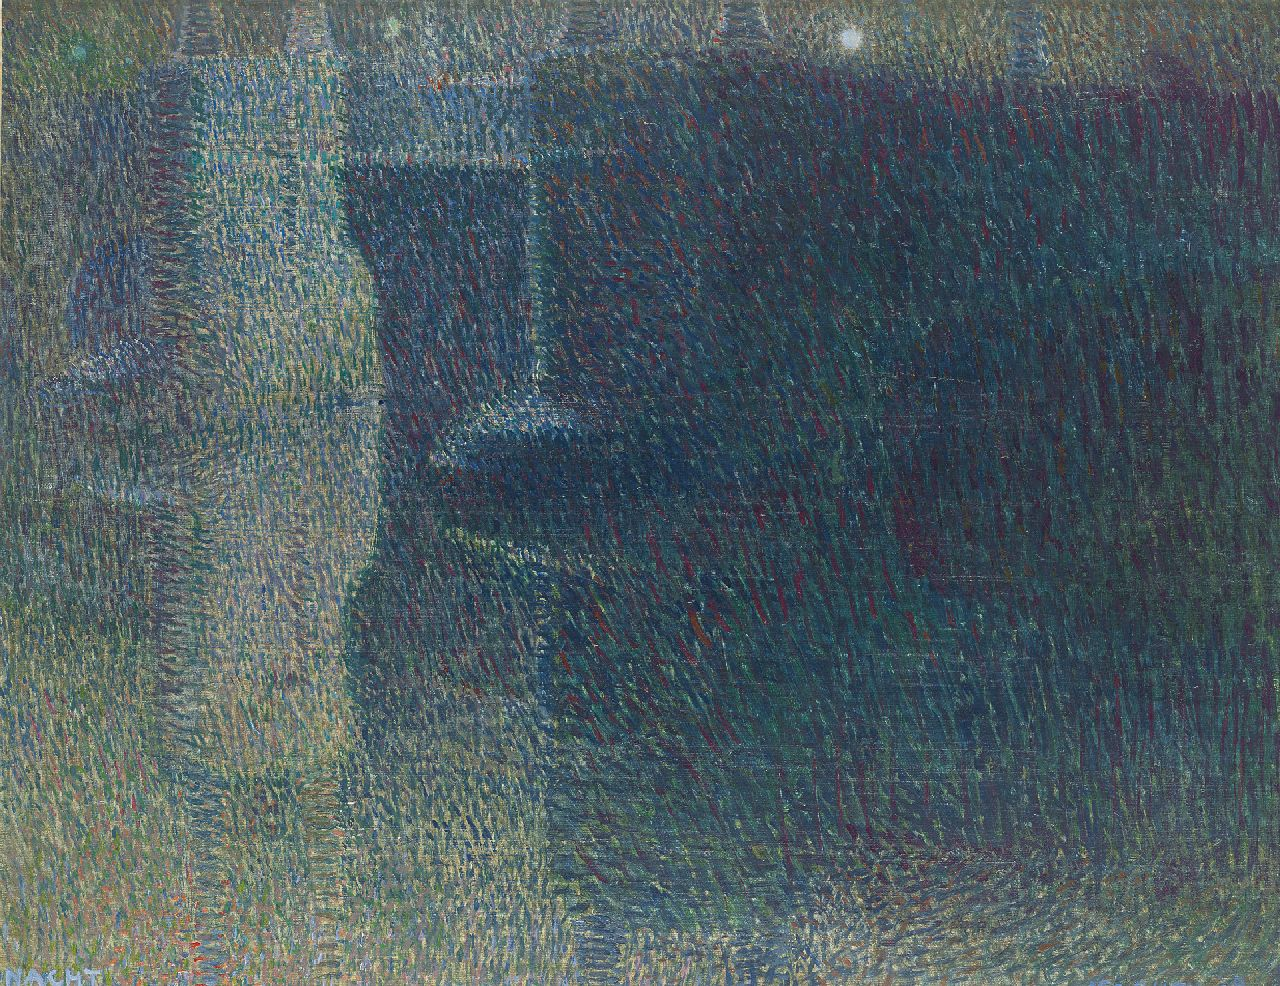 Gestel L.  | Leendert 'Leo' Gestel, Night (the Amstel Bridge over the Amstel River in Amsterdam), oil on canvas 52.0 x 64.8 cm, signed l.r. and dated '08